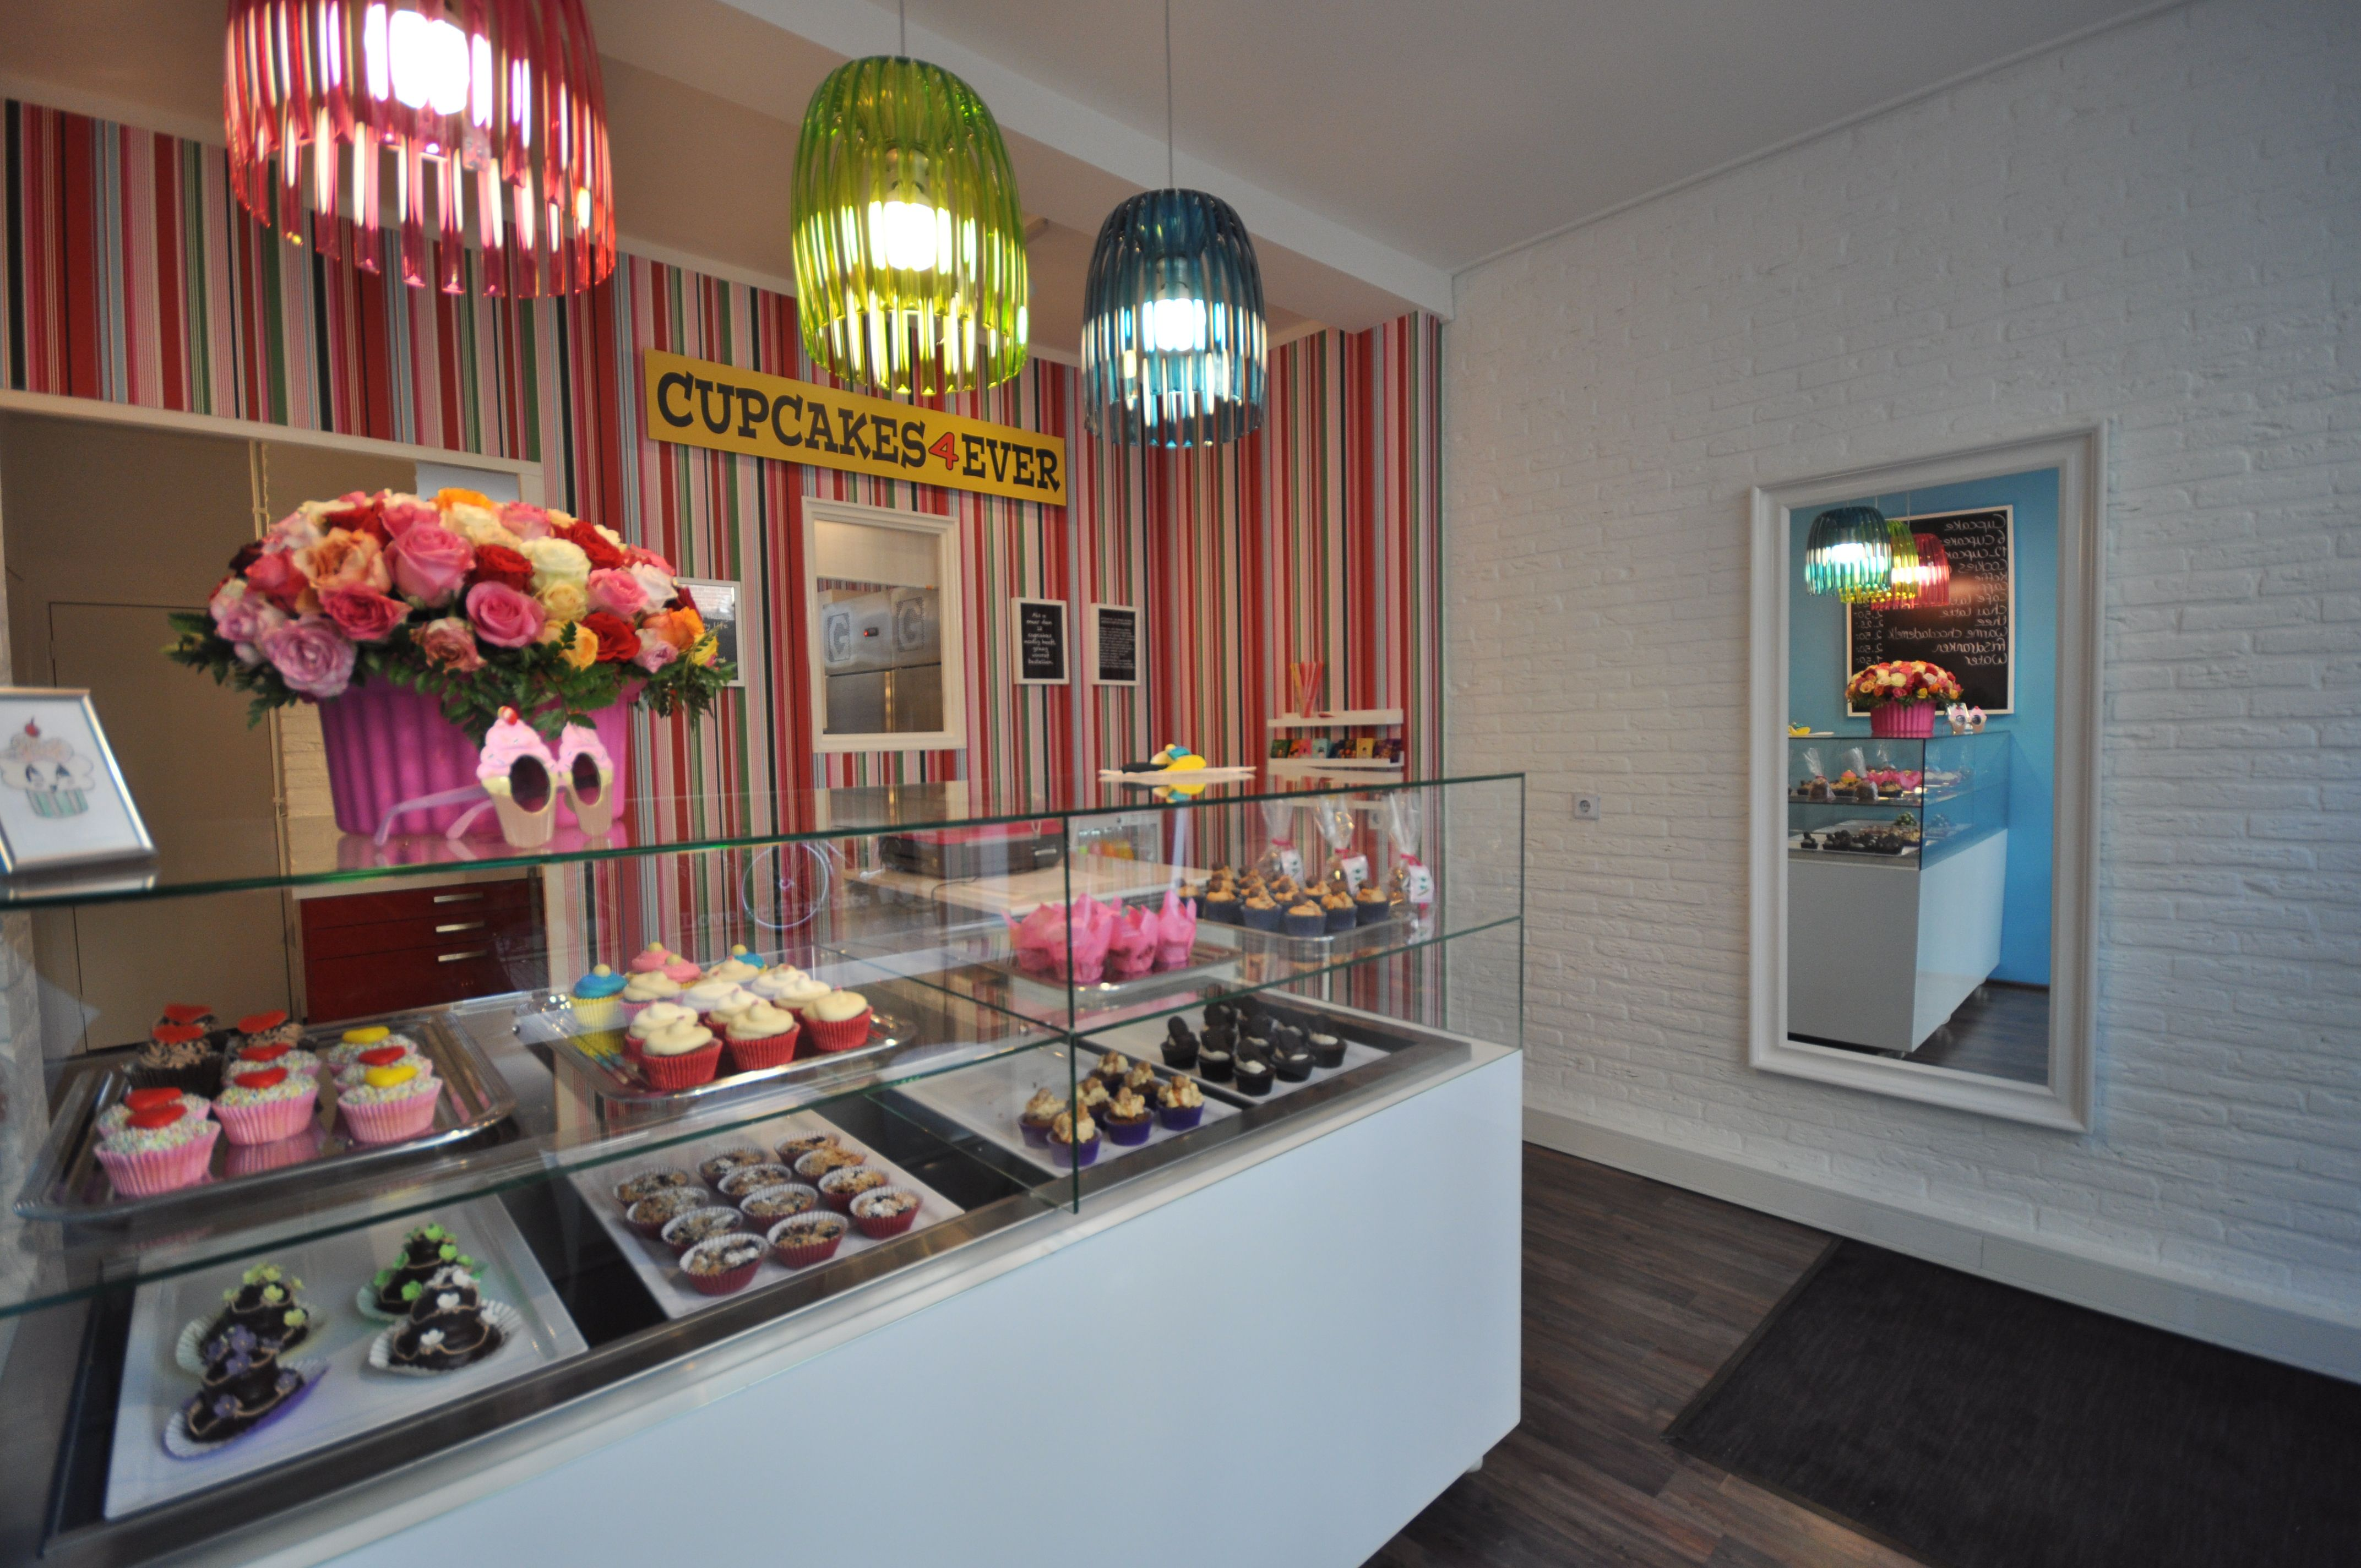 Cupcakes4Ever Shop, Arnhem, The Netherlands  Retail Interior Design Project  By A Interior